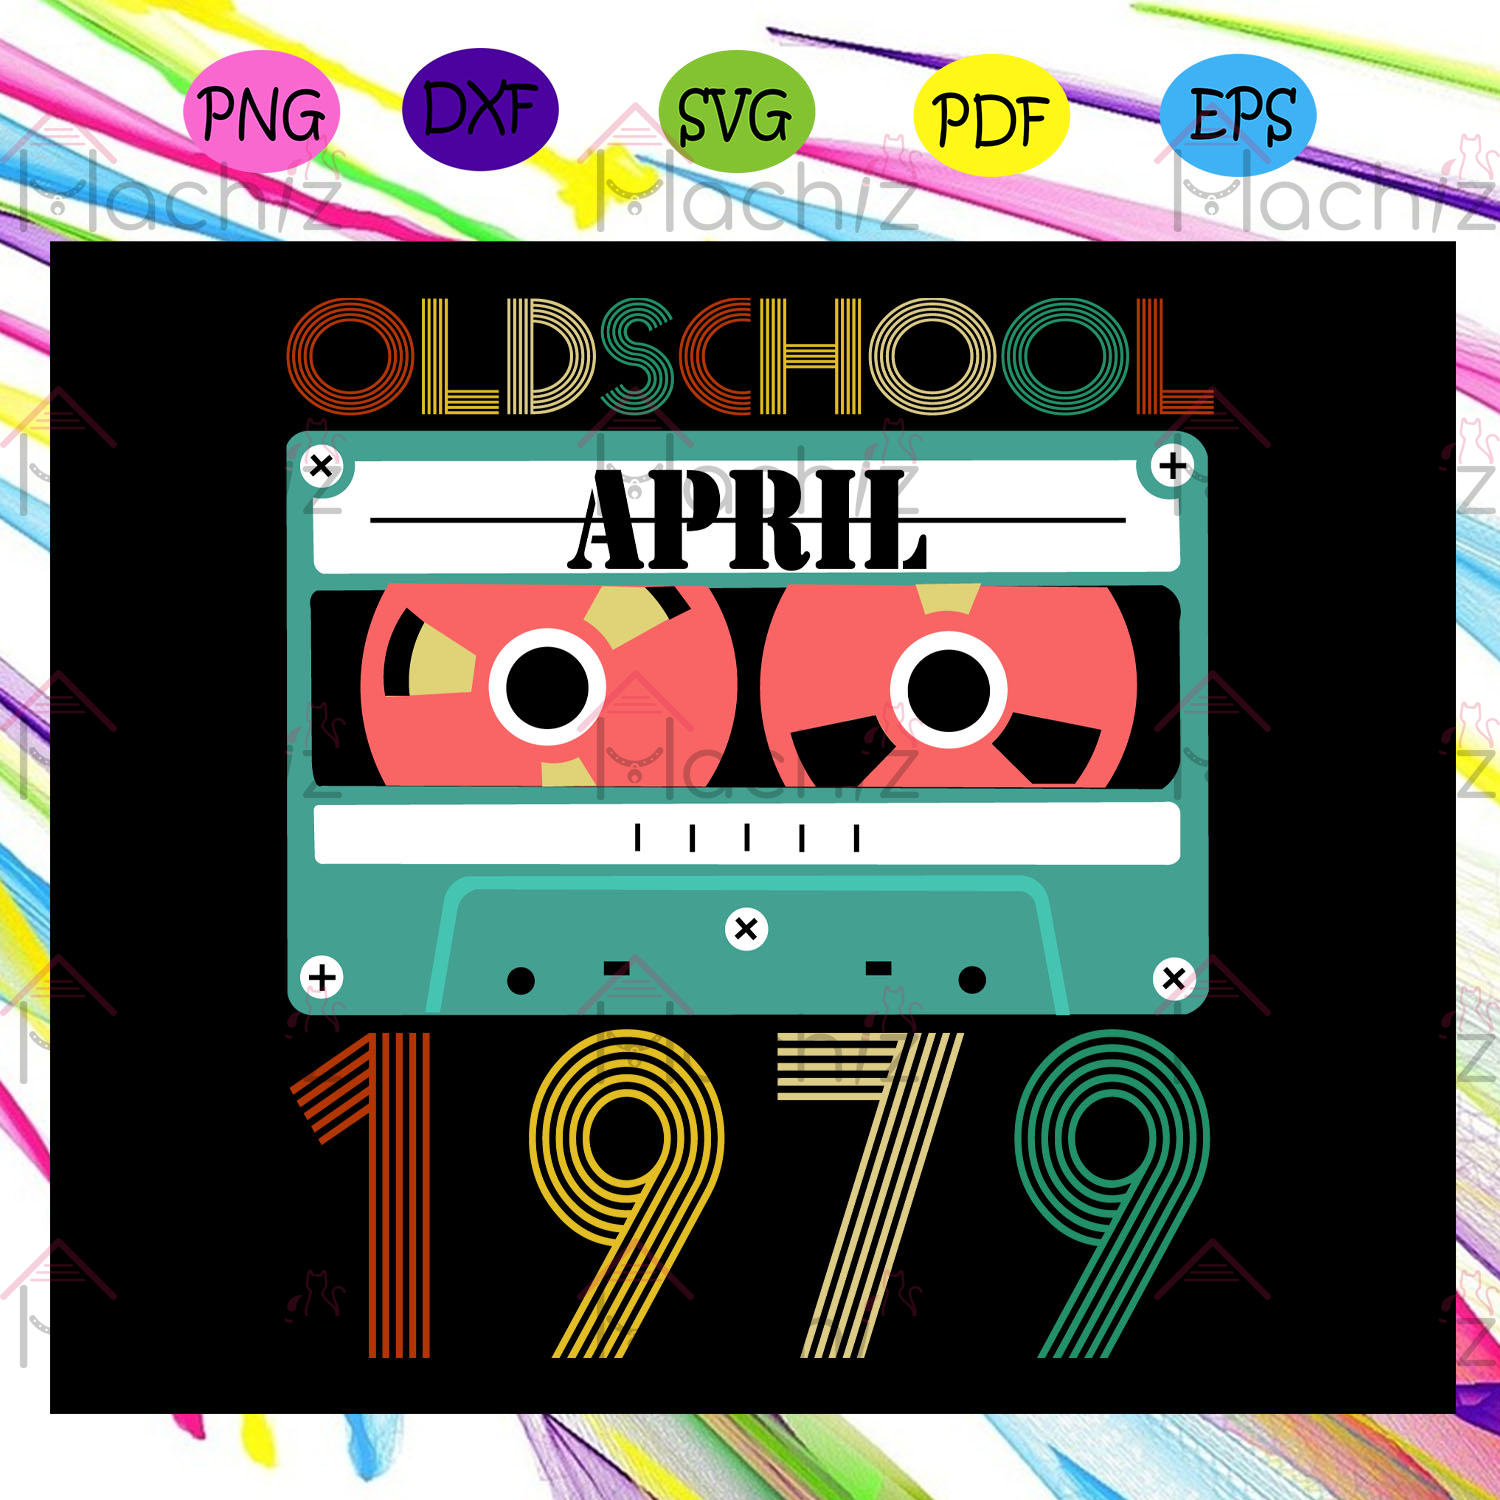 Old school april 1979 svg, files for silhouette, files for cricut, svg, dxf, eps, png instant download